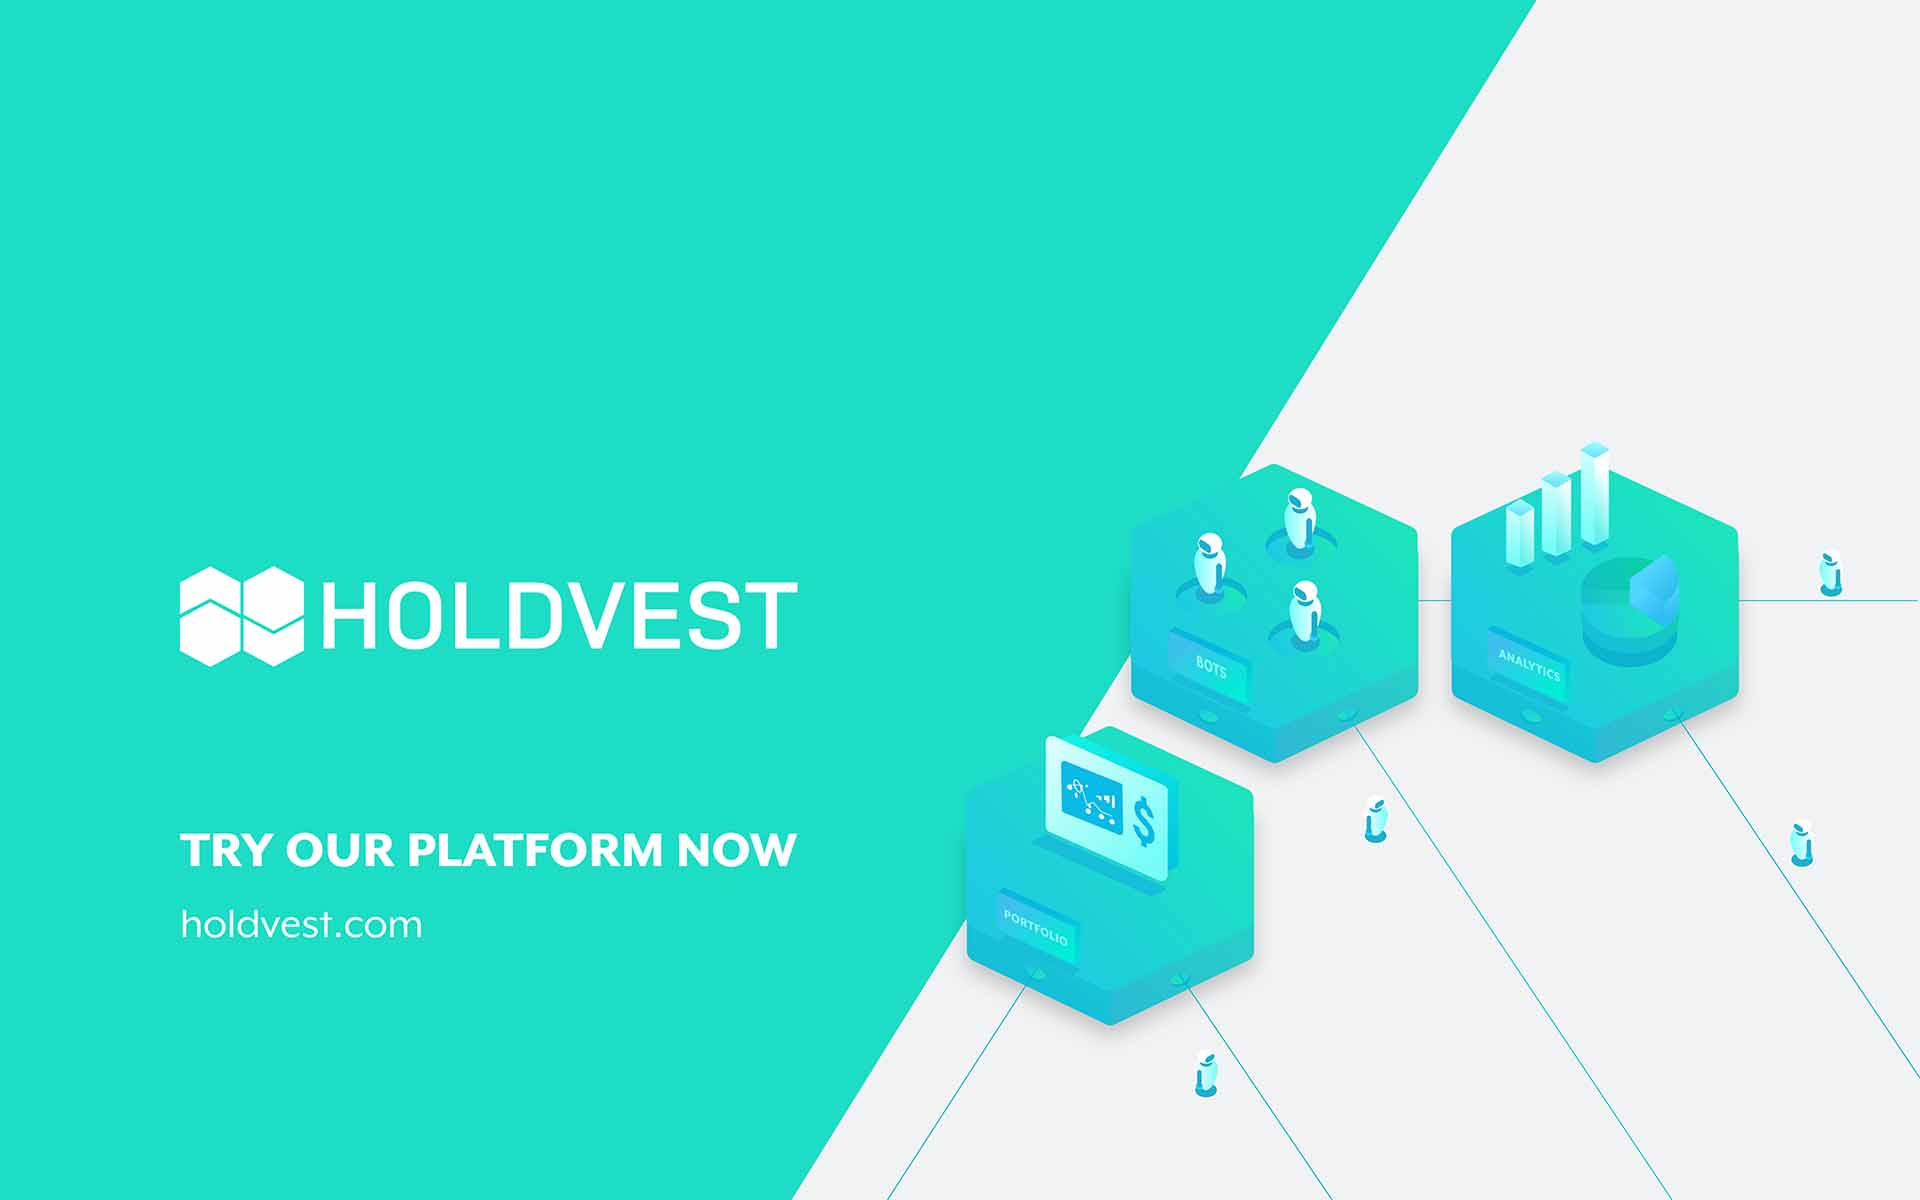 HOLDVEST: One-Stop Cryptocurrency Trading & Investing